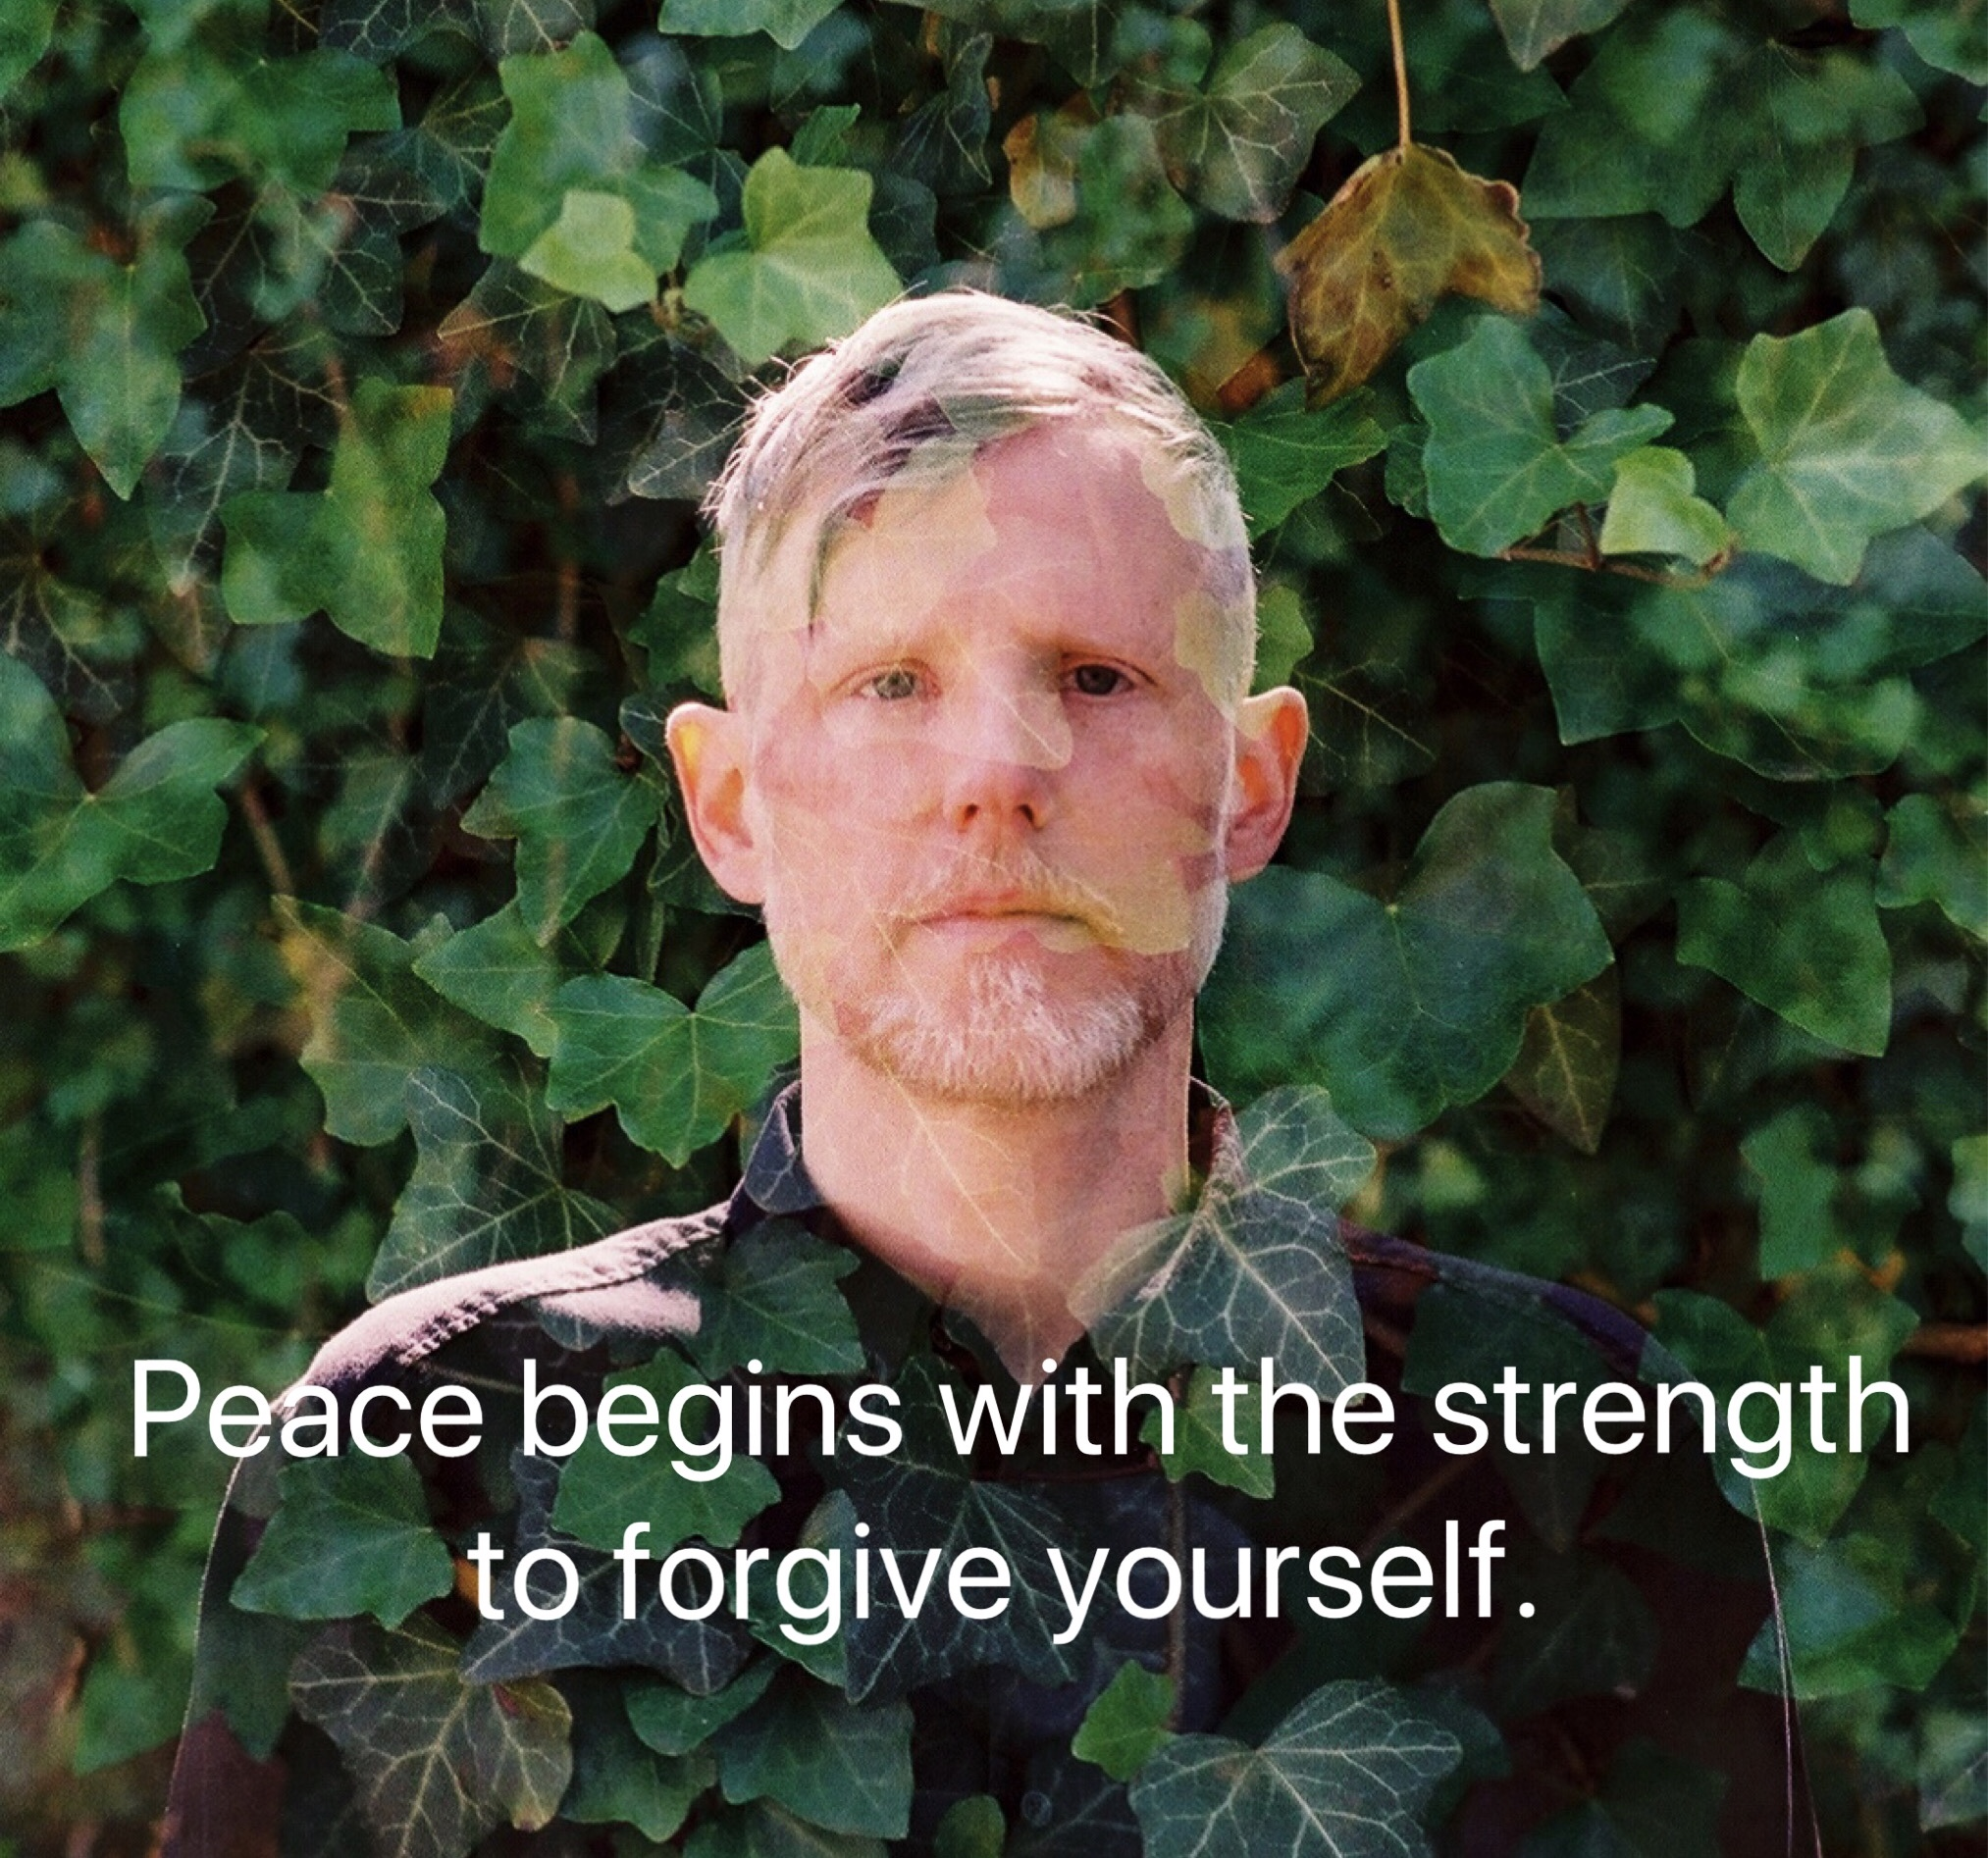 """How do we transcend the mistakes we made when we were young?  Many of us live with deep scars that can unconsciously affect our decision making as an adult. In response, many philosophies have adopted the concept of making amends to those we have wronged. This is proven to be a powerful mechanism for personal growth. So how do we start the process of making amends with ourselves?  Author David Richo believes that we should  """"sit with ourselves"""" , like we would when a friend is having a bad day. Listening without judgement to the thoughts that pass through our mind will cause them to fade, little by little. This technique can be used to forgive ourselves once and for all. It takes strength to begin this journey, as we want so badly to move on without dwelling on the past.   Let's create a habit of listening patiently to our more flawed side, strive to embrace our mistakes, and make peace with ourselves."""